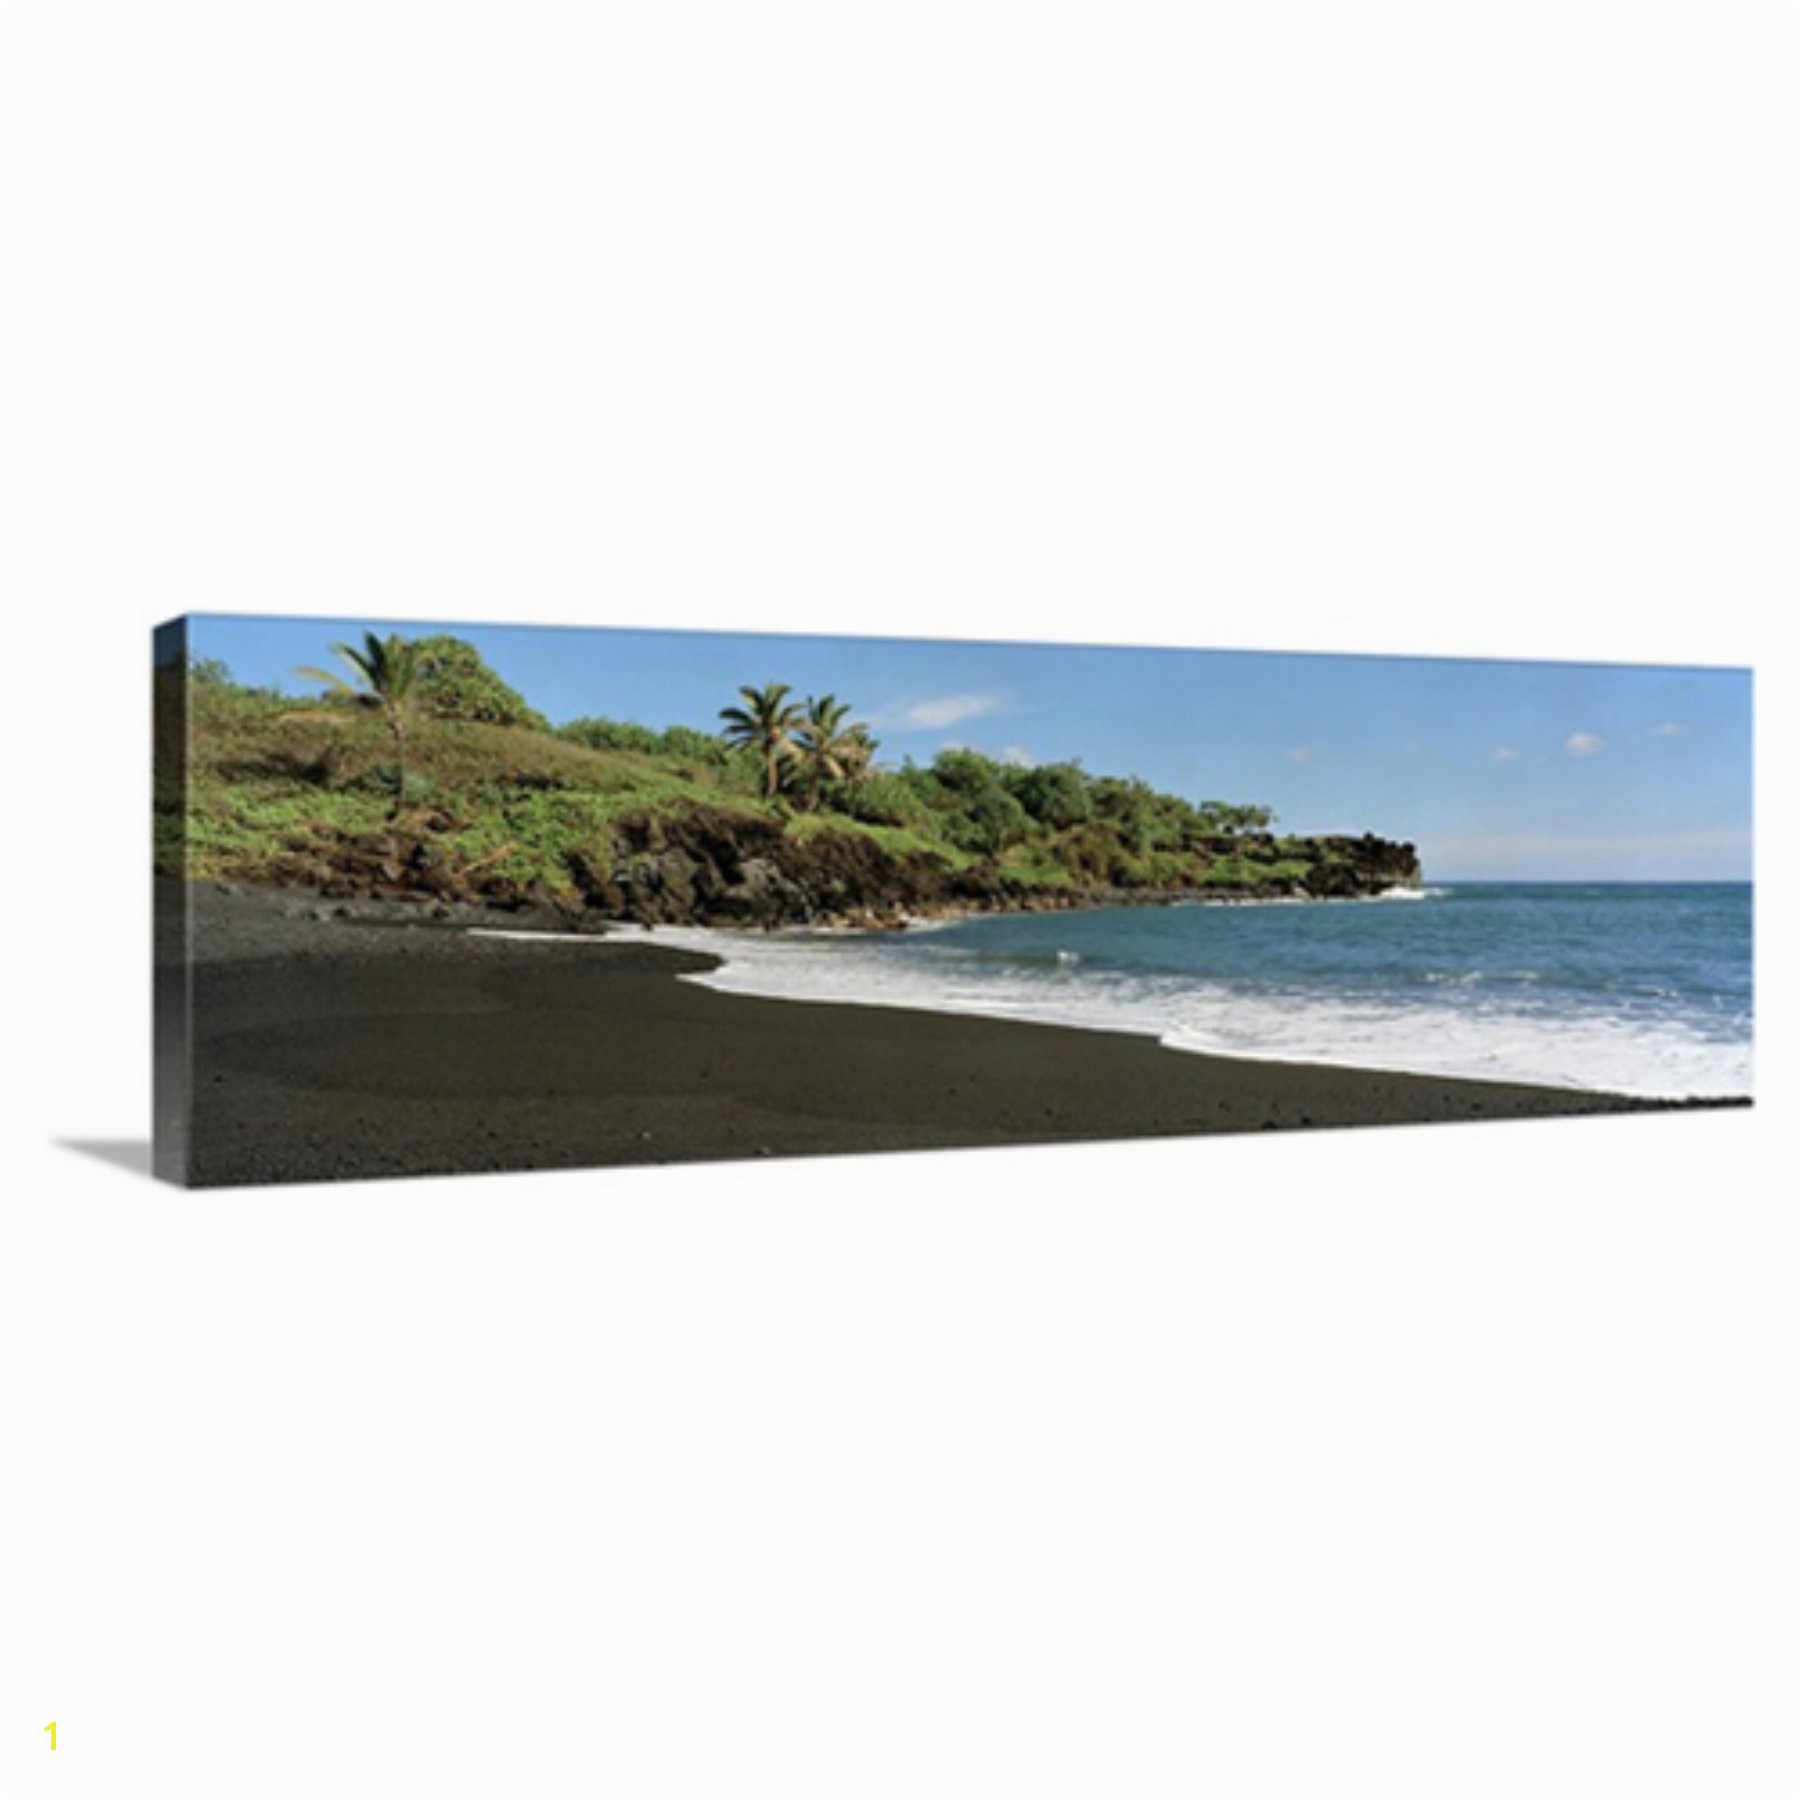 Great BIG Canvas Surf on the Beach Black Sand Beach Maui Hawaii Canvas Wall Art Print